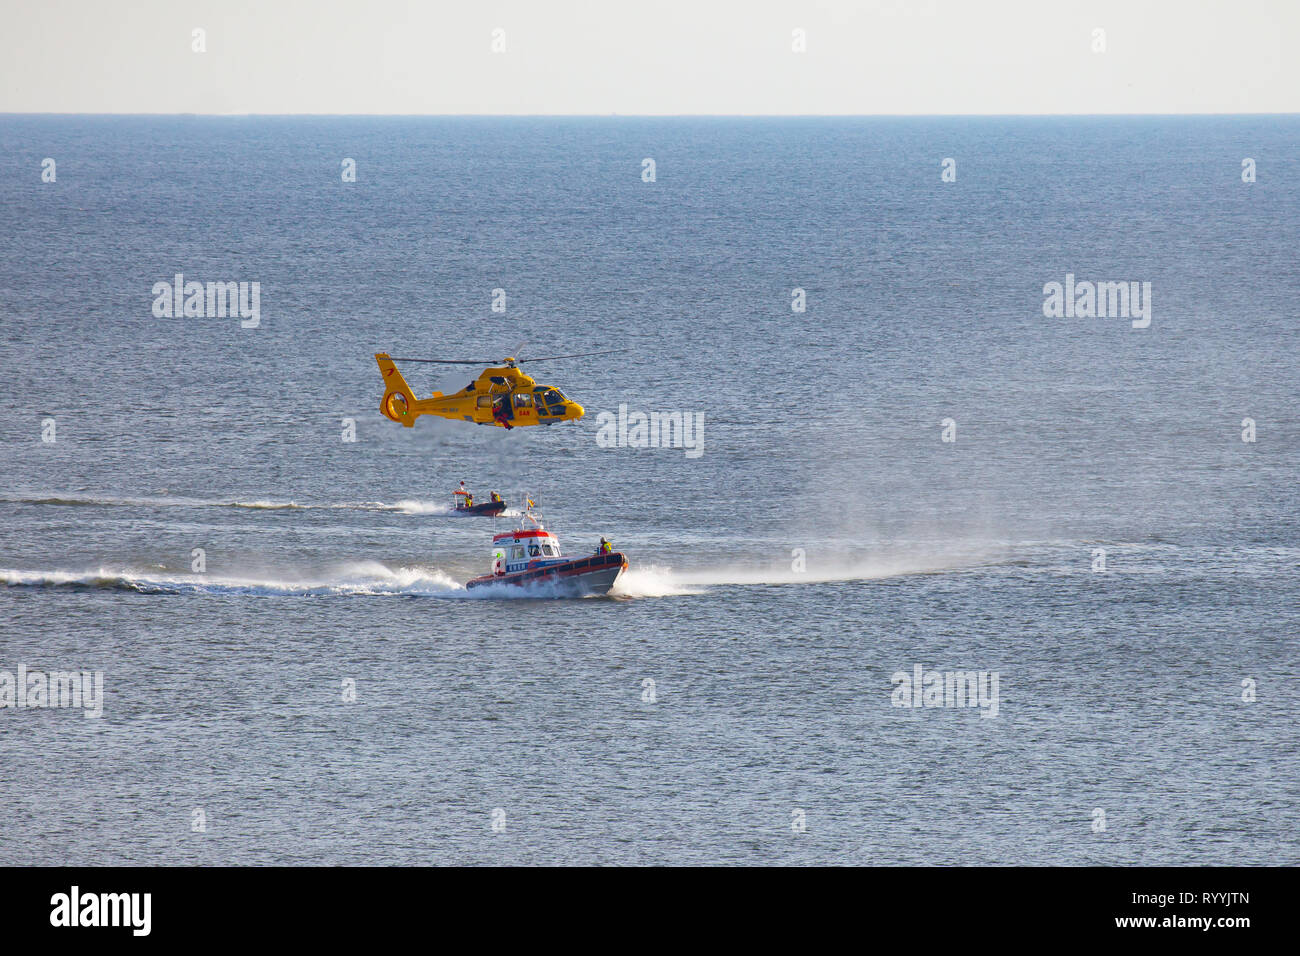 a helicopter of the dutch coastgard is abseiling a man over the sea during a rescue drill Stock Photo